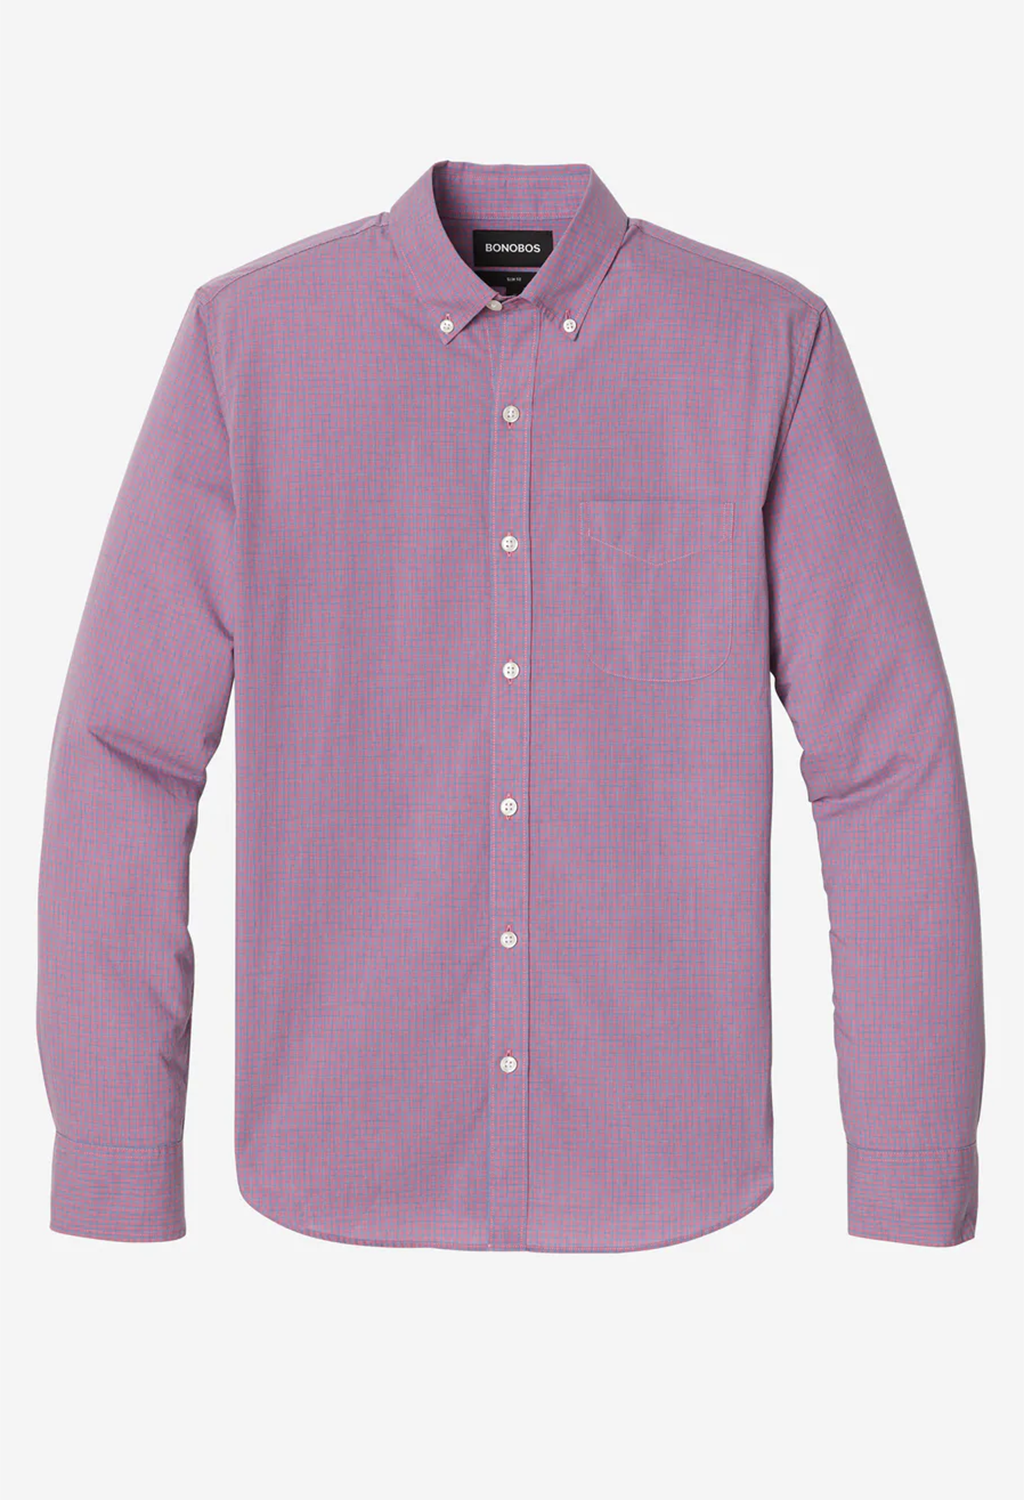 Bonobos Lightweight Button Down